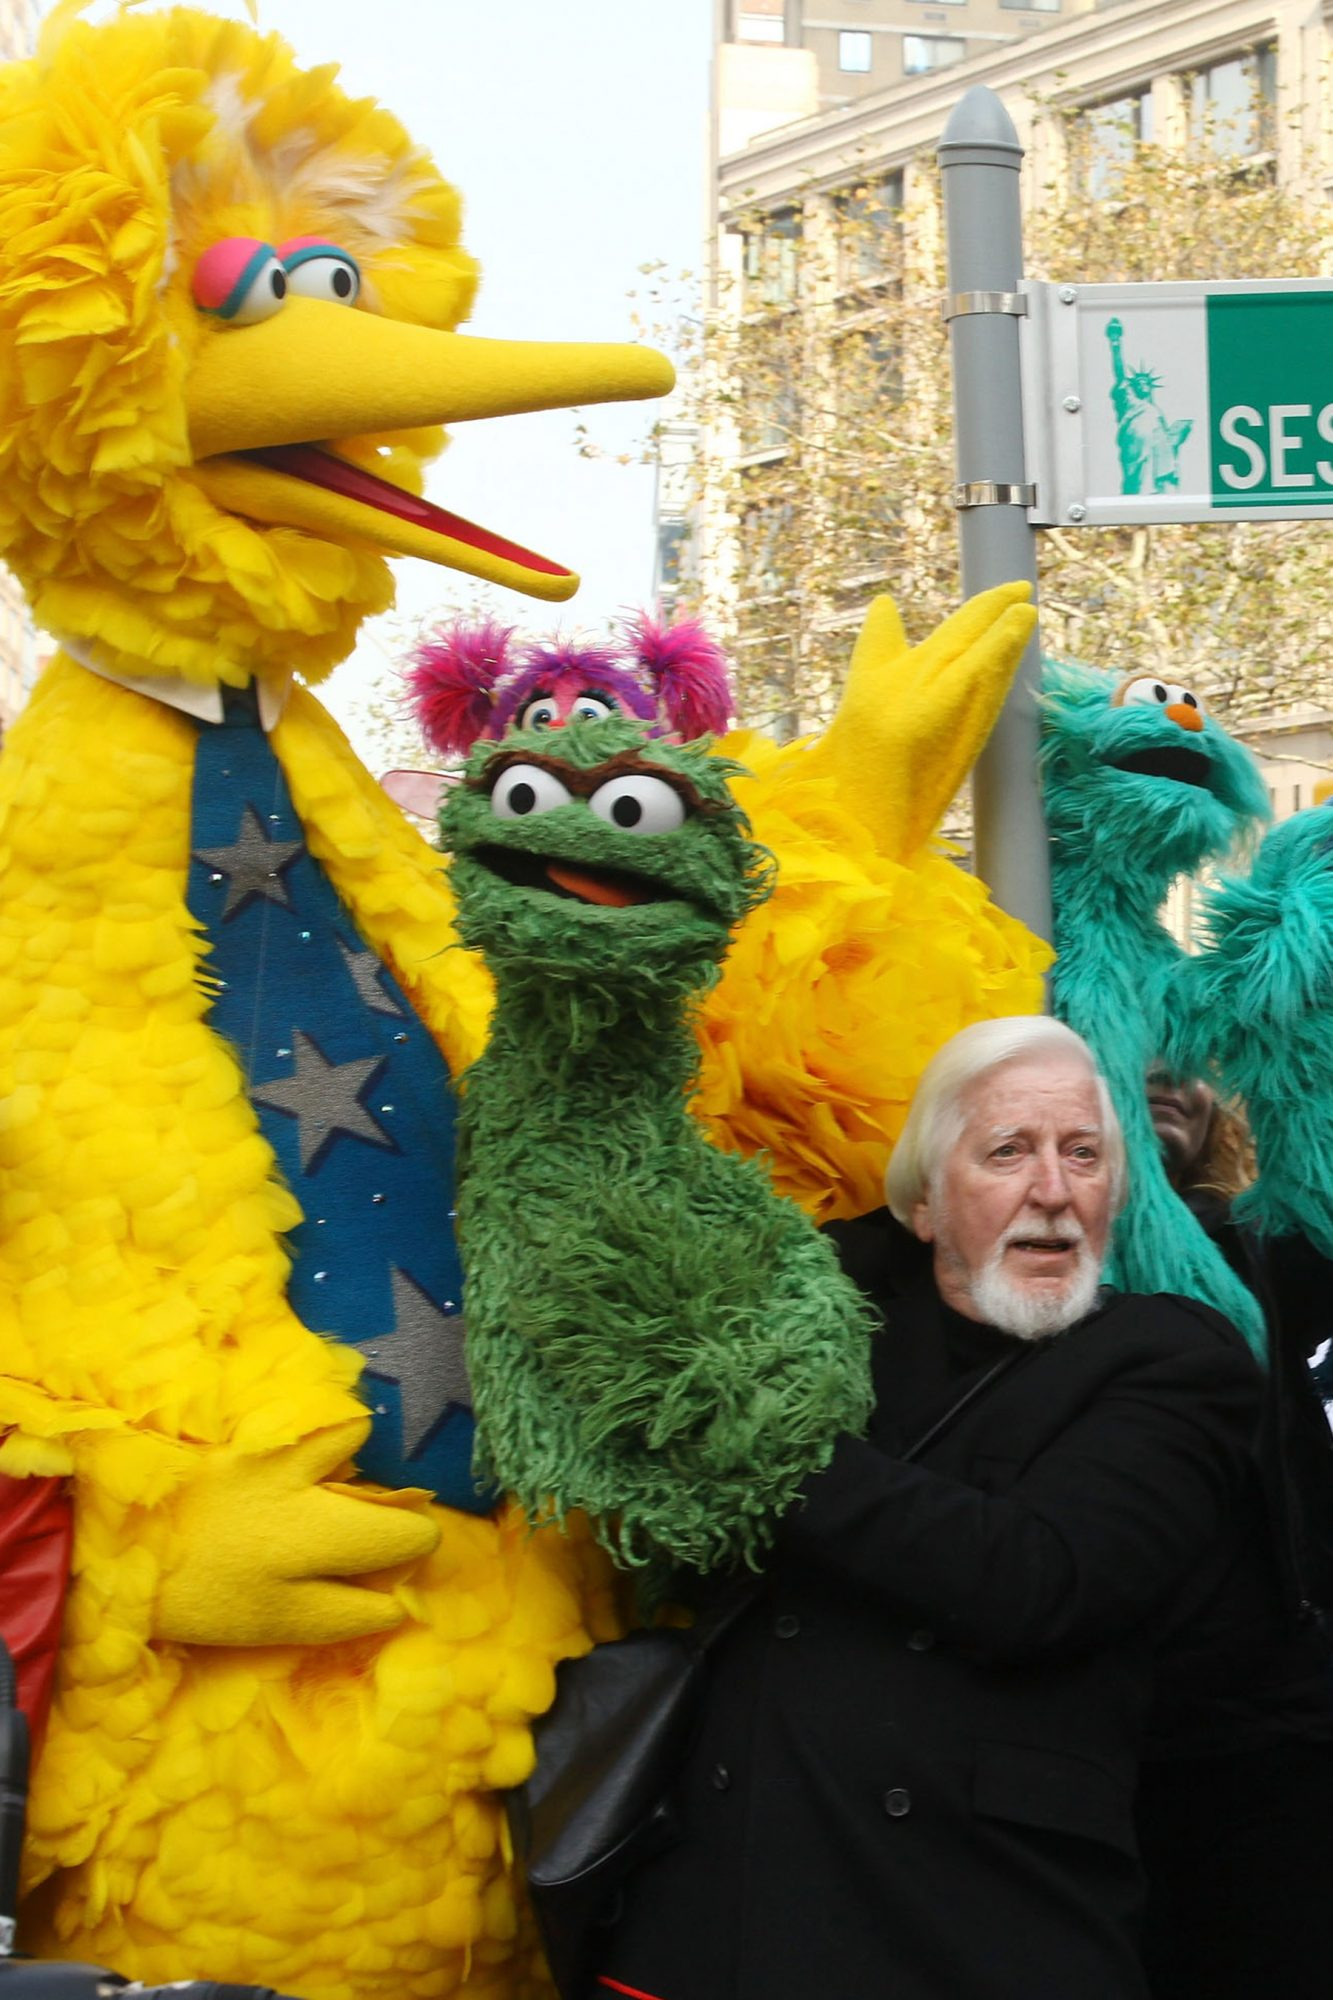 The Original Big Bird Puppeteer Is Retiring After Almost 50 Years on Sesame Street